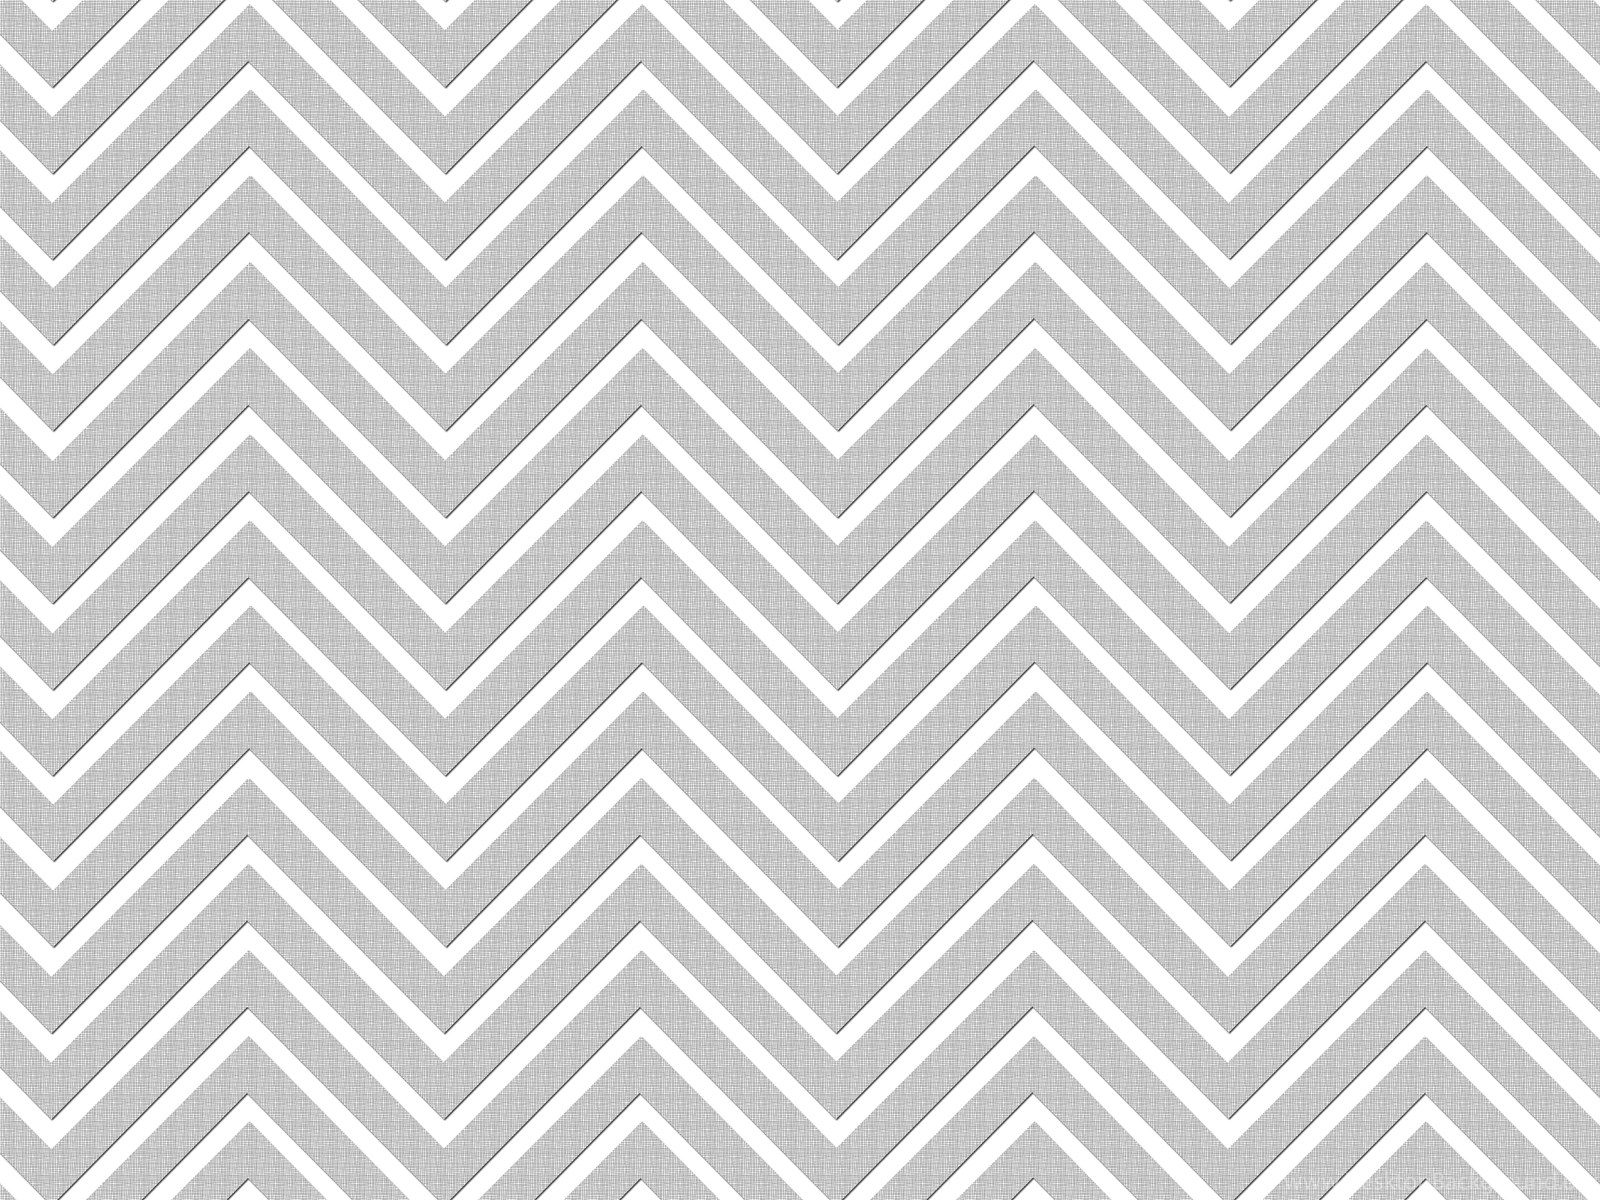 Zig Zag Wallpapers Wallpapers Zone Desktop Background